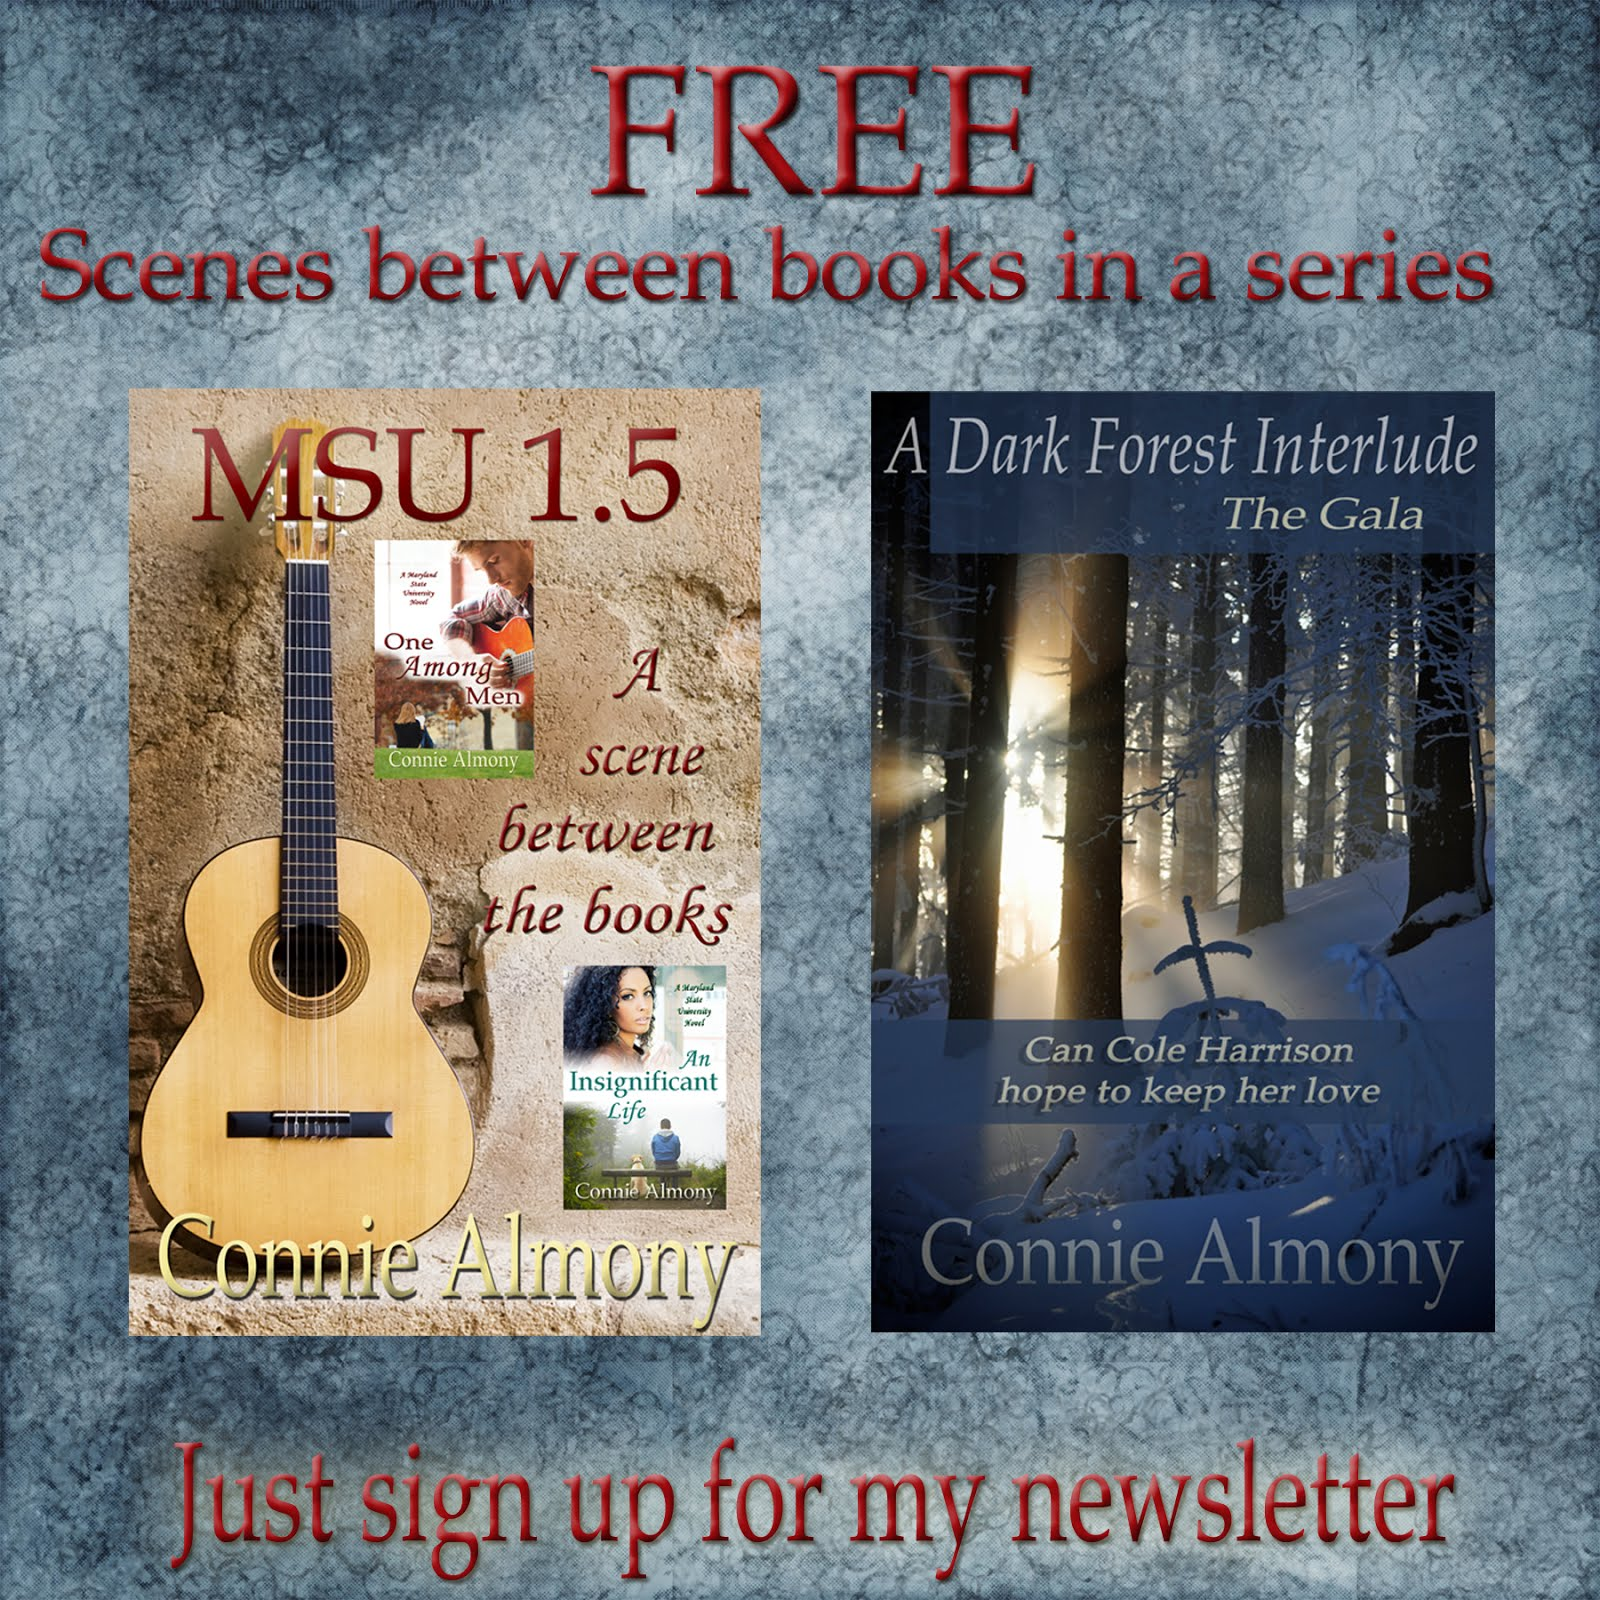 Connie's Author Newsletter